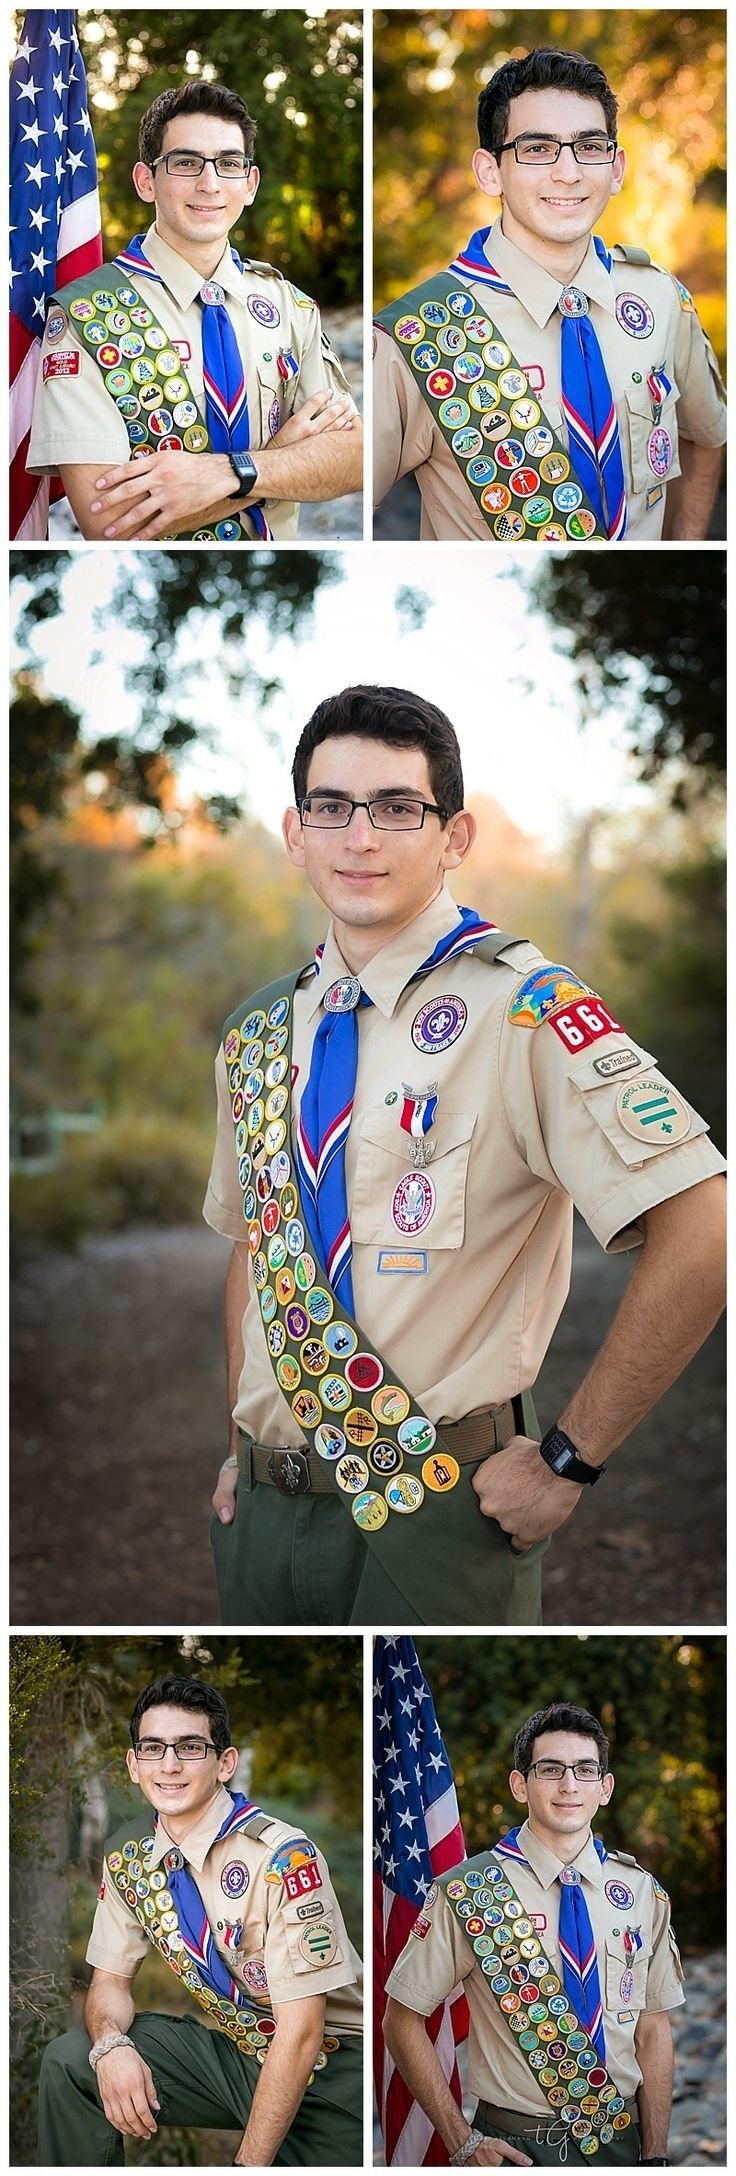 10 Cute Eagle Scout Service Project Ideas 15 best 2017 national scout jamboree images on pinterest scouting 2021